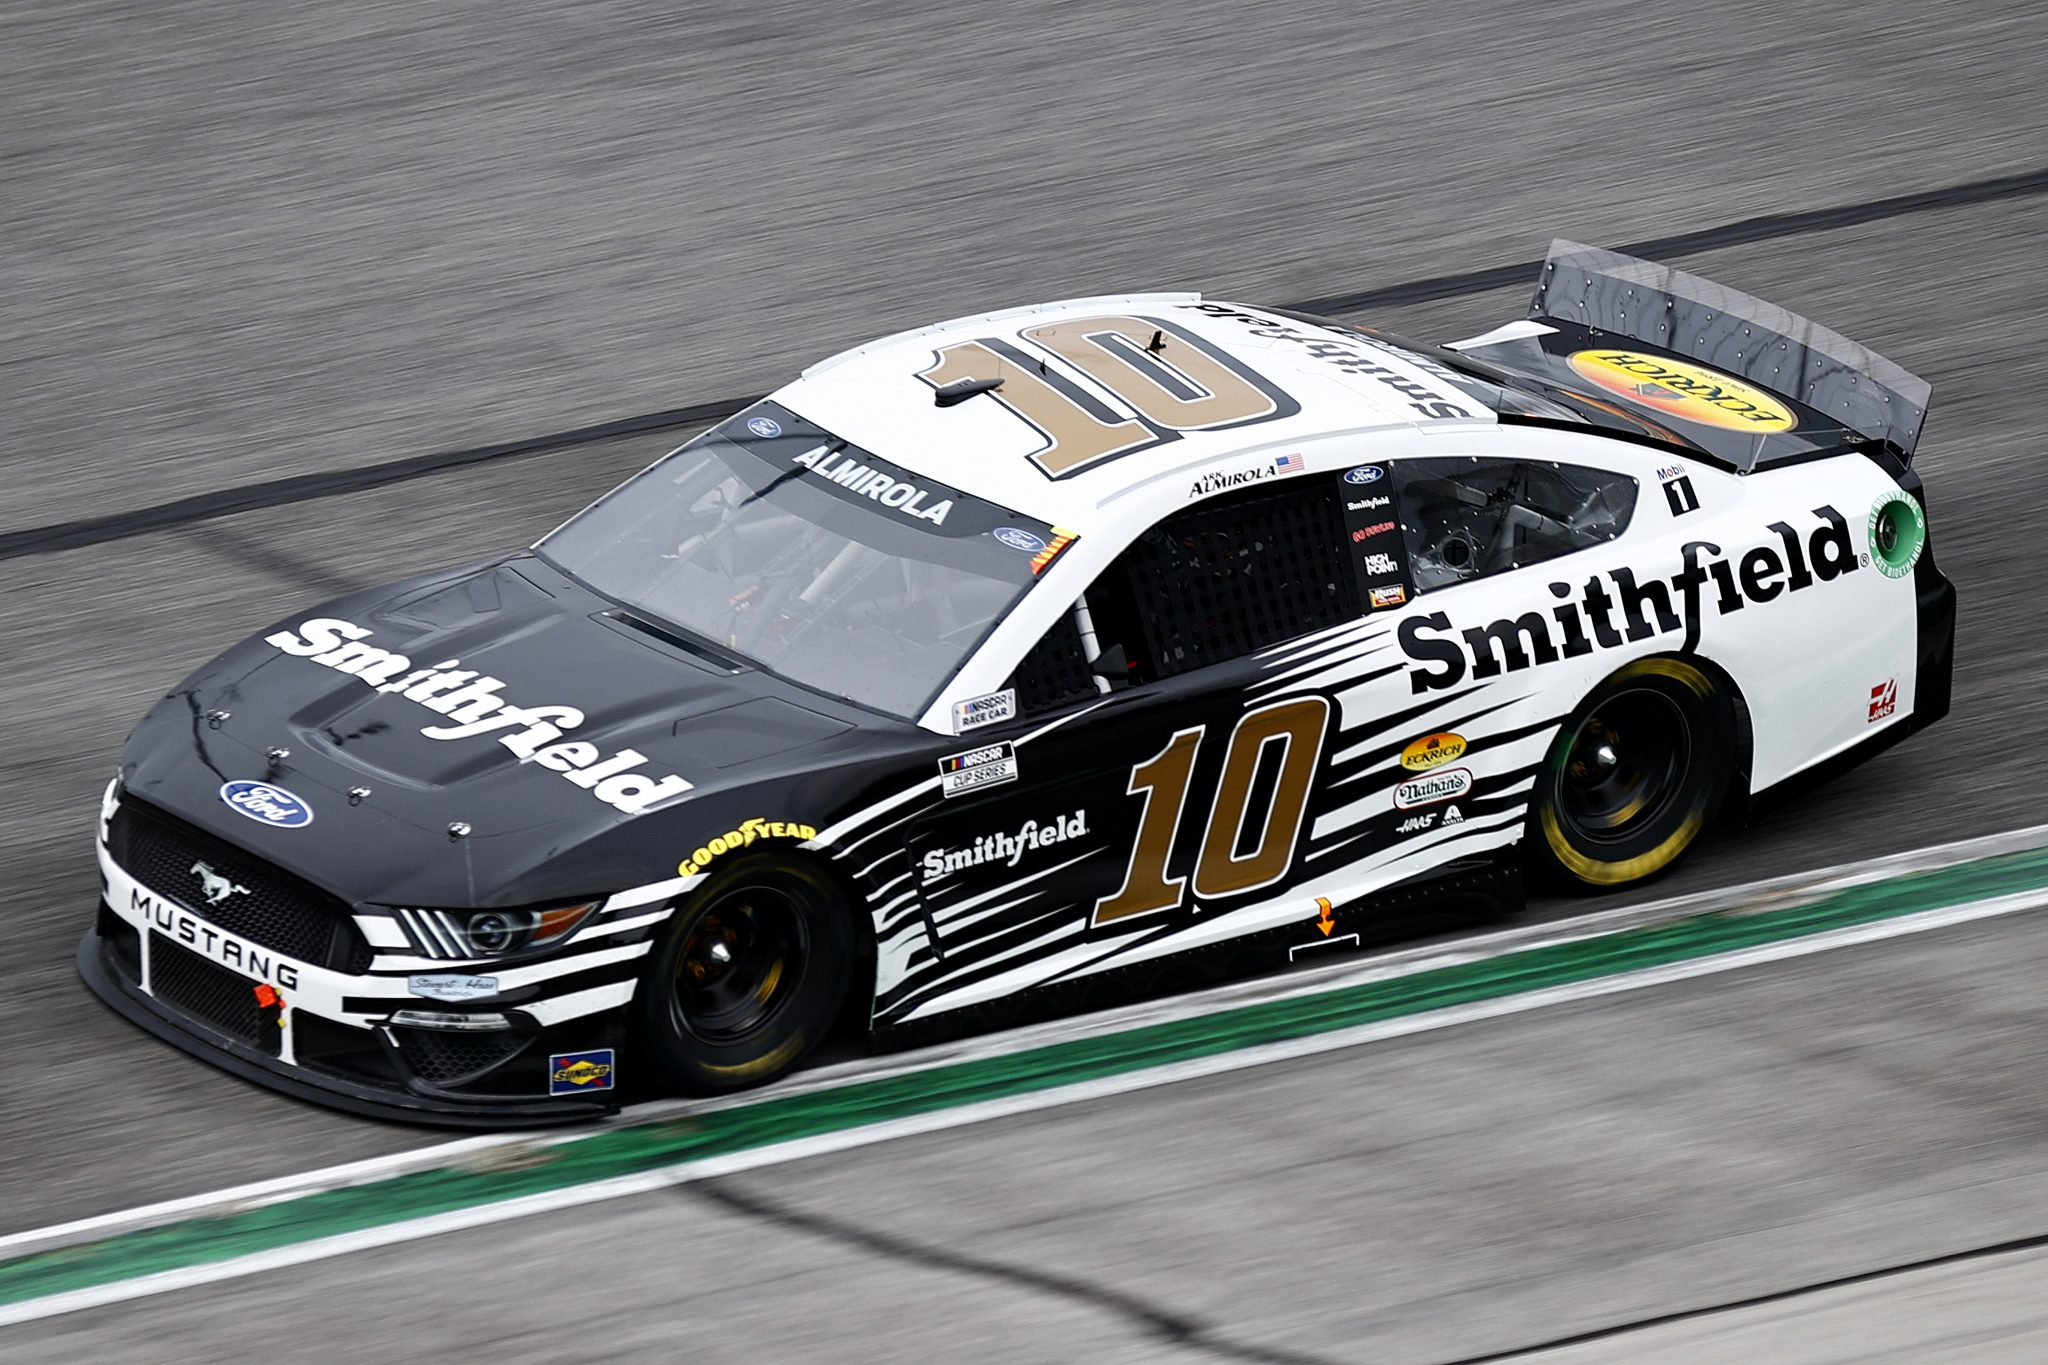 HAMPTON, GEORGIA - JULY 11: Aric Almirola, driver of the #10 Smithfield Ford, drives during the NASCAR Cup Series Quaker State 400 presented by Walmart at Atlanta Motor Speedway on July 11, 2021 in Hampton, Georgia. (Photo by Jared C. Tilton/Getty Images)   Getty Images